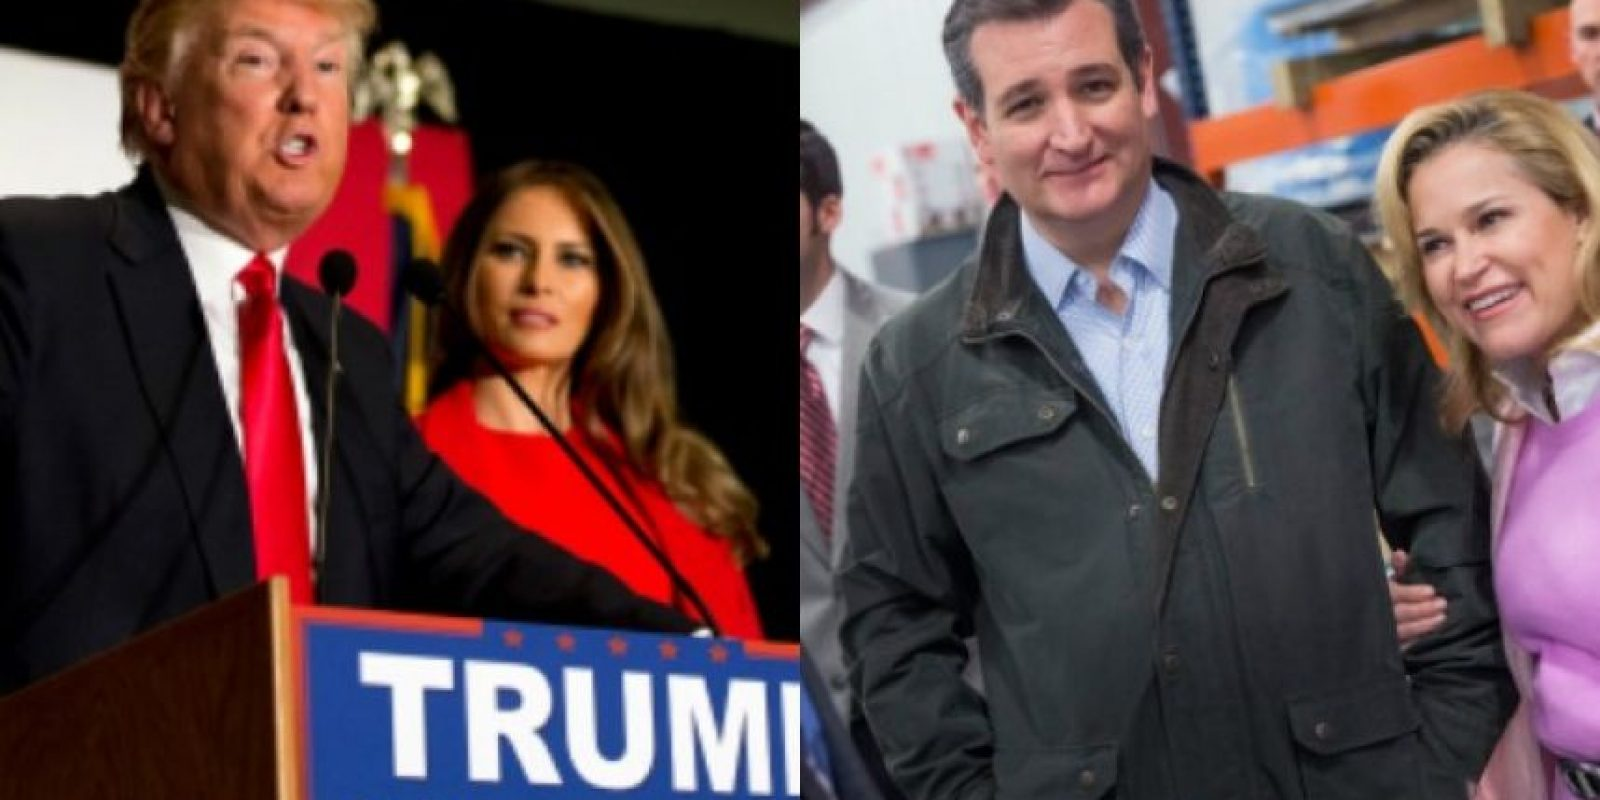 Las esposas de los republicanos Donald Trump y Ted Cruz Foto: Getty Images